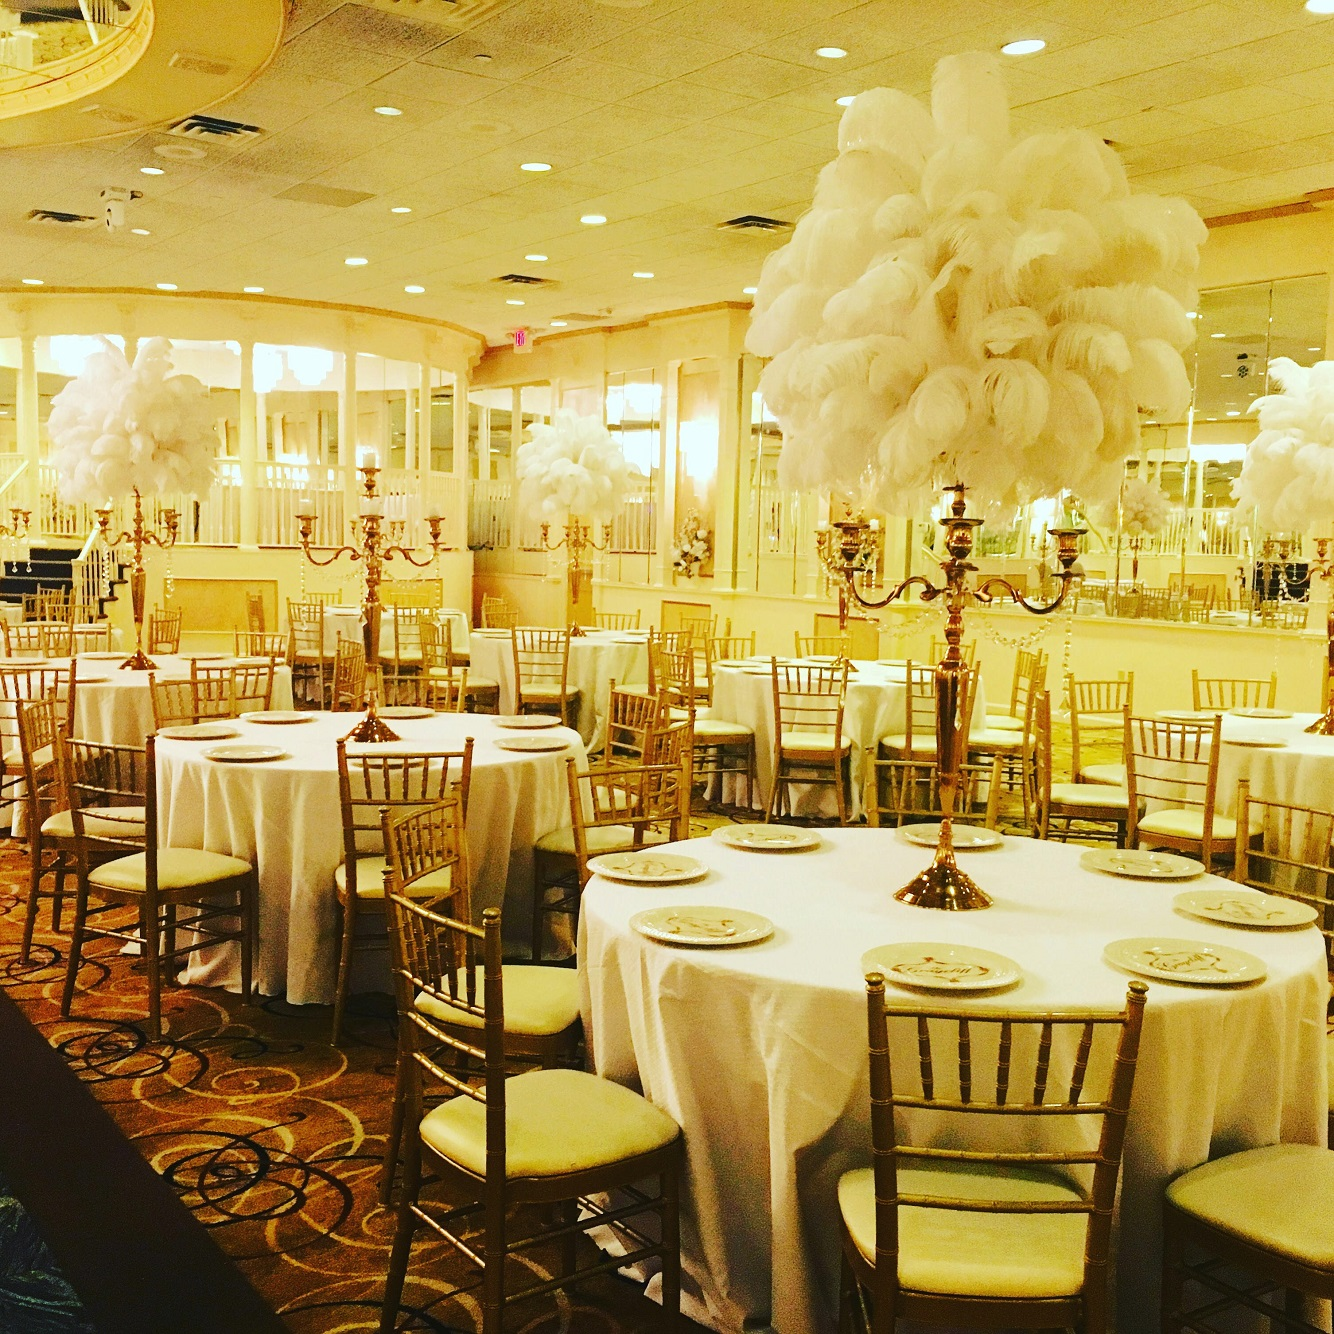 Feather Centerpieces For Rent : Ostrich feather centerpiece rental weddings sweet